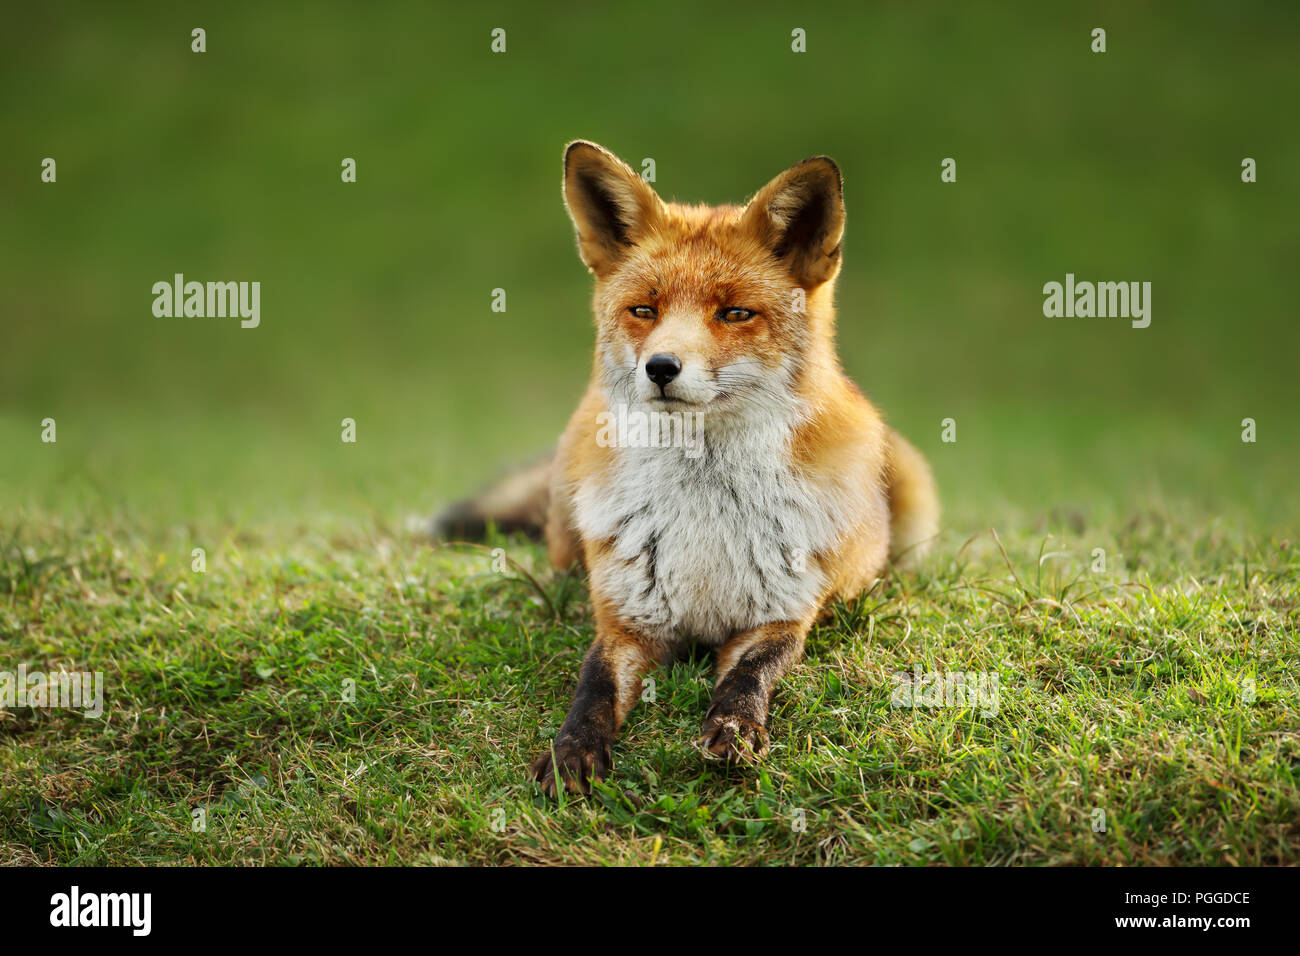 Close up of a red fox lying on the grass in summer. - Stock Image